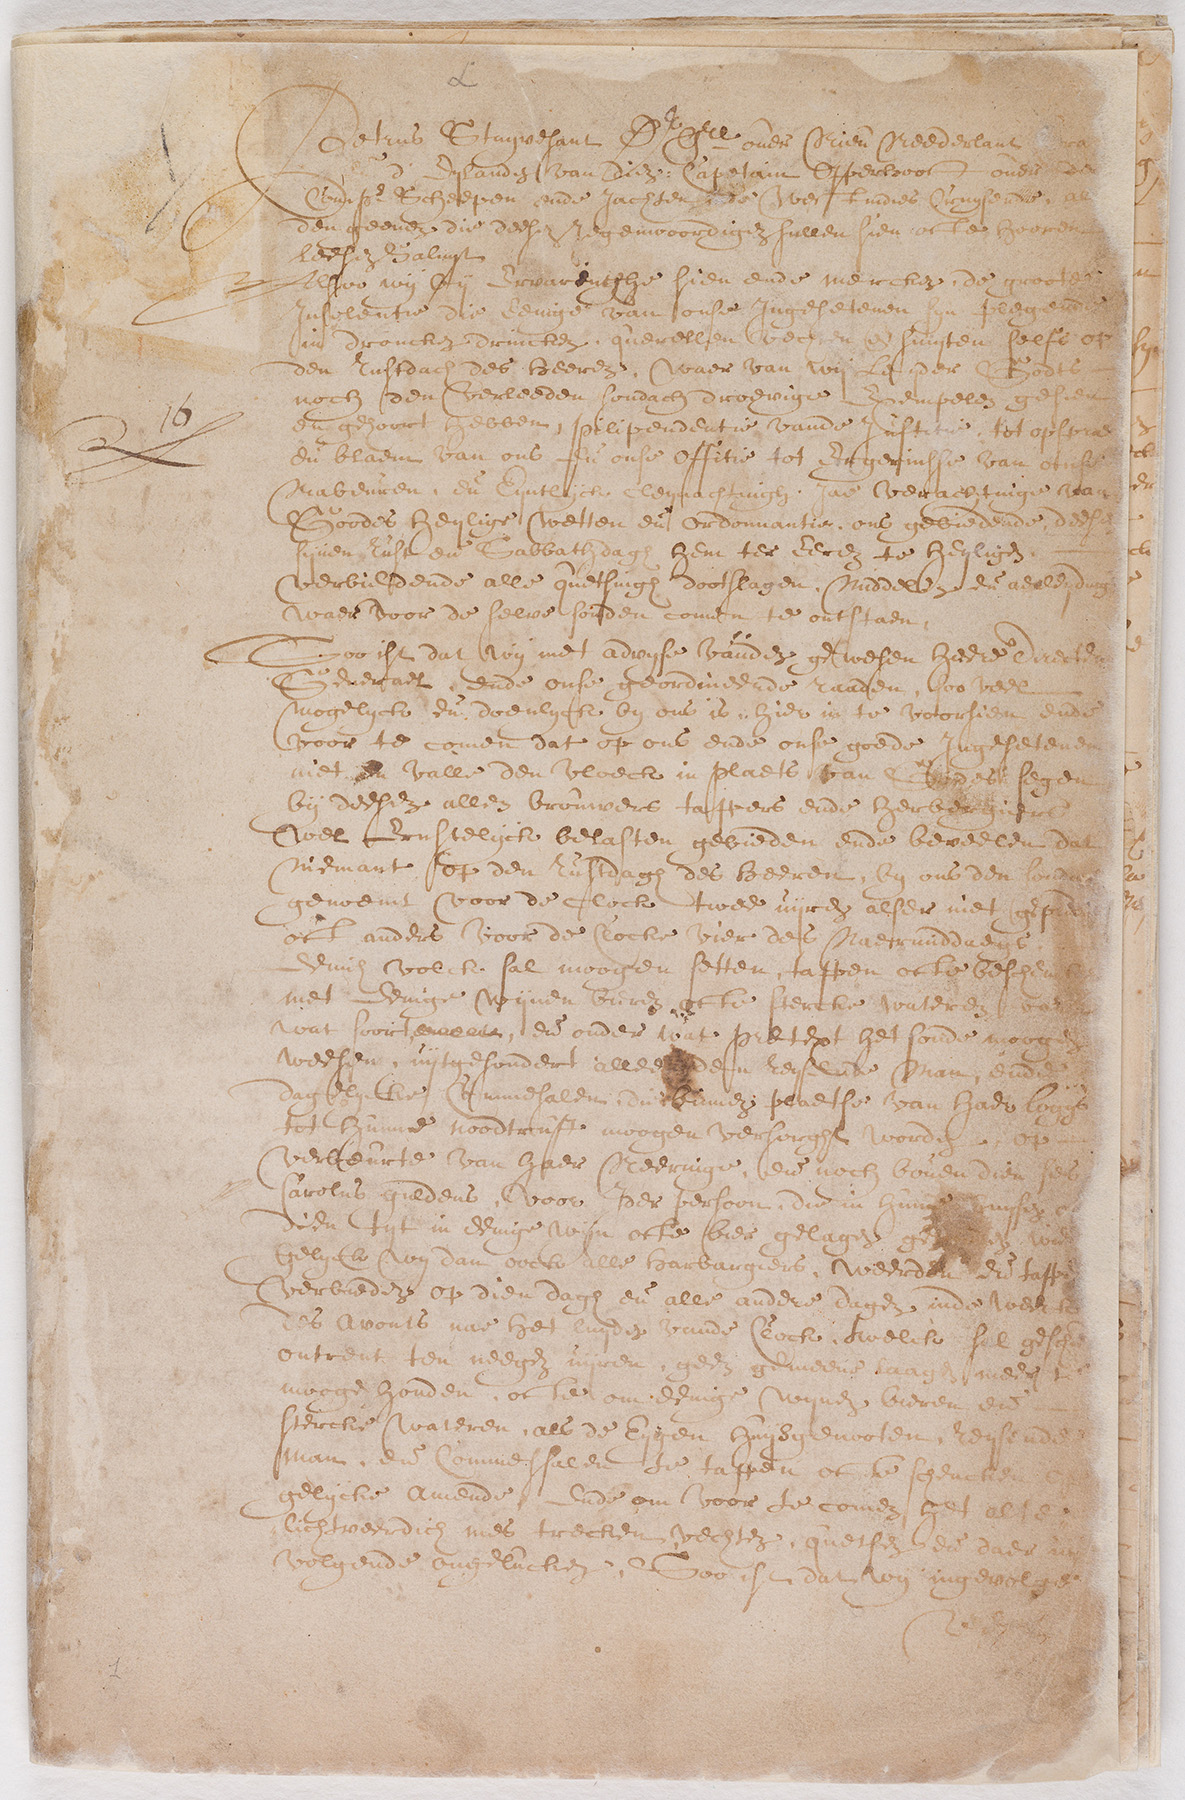 Ordinances of New Amsterdam, page 1